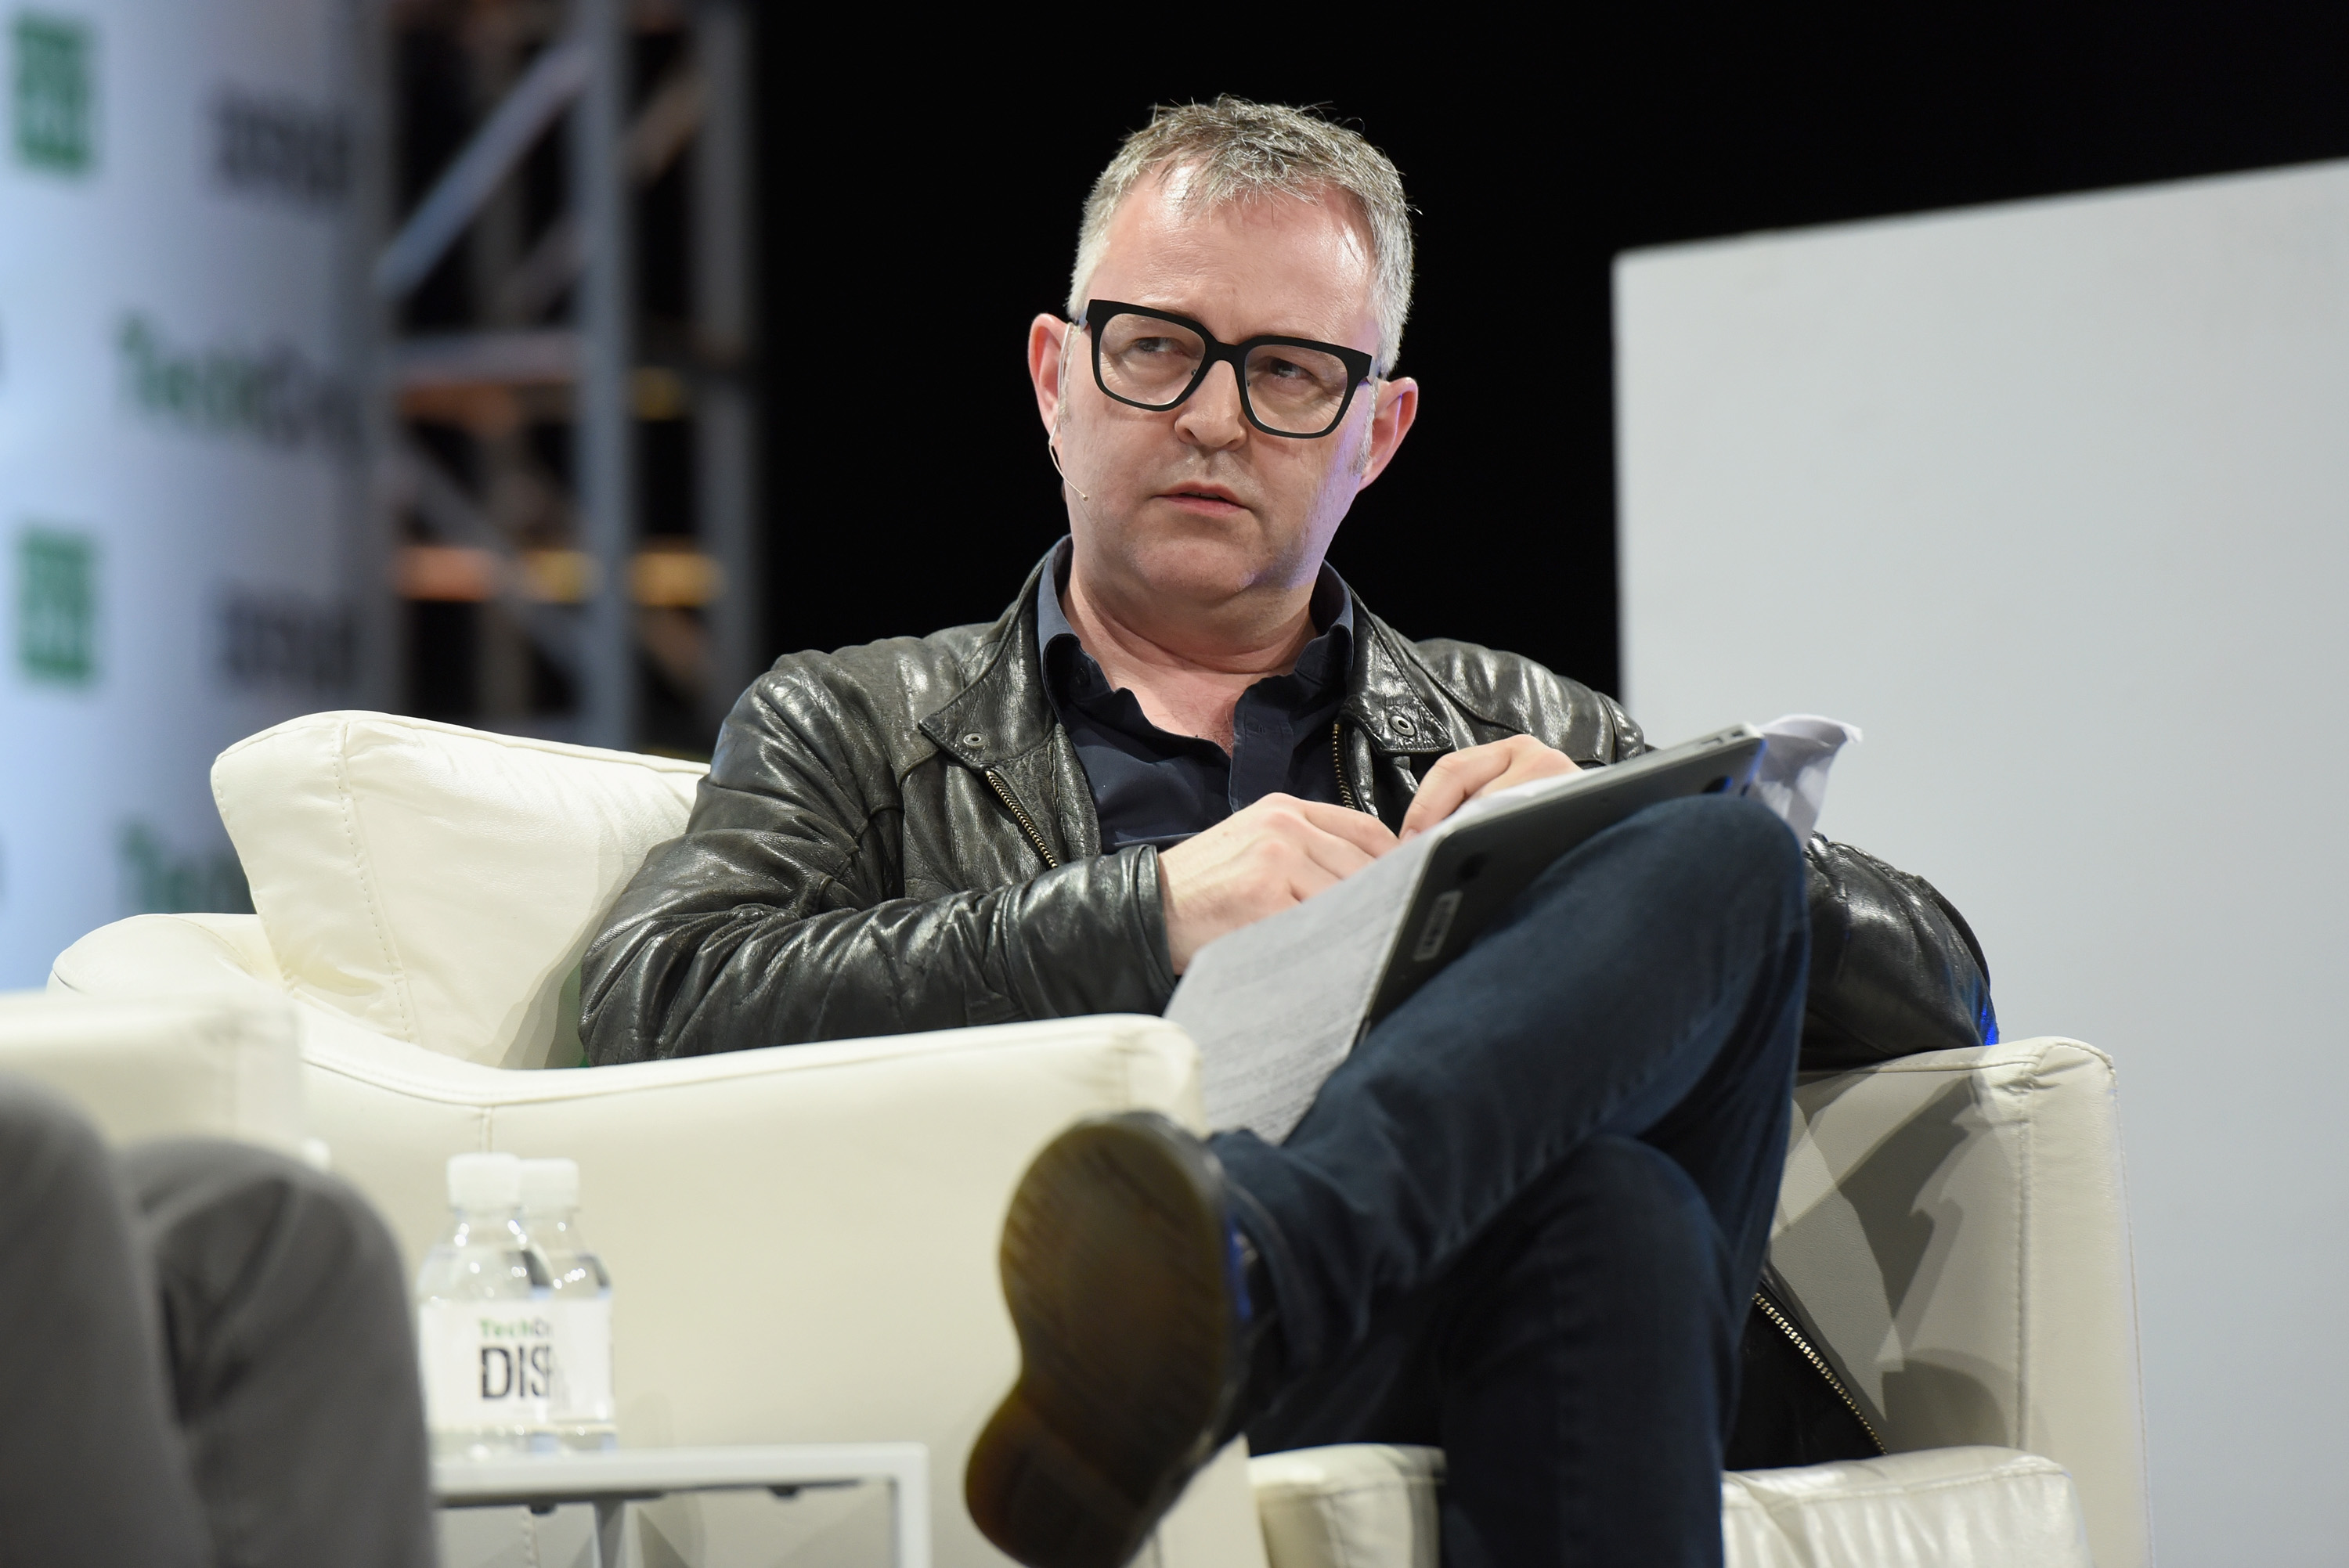 NEW YORK, NY - MAY 10: TechCrunch editor-at-large Mike Butcher speaks onstage during TechCrunch Disrupt NY 2016 at Brooklyn Cruise Terminal on May 10, 2016 in New York City. (Photo by Noam Galai/Getty Images for TechCrunch) *** Local Caption *** Mike Butcher